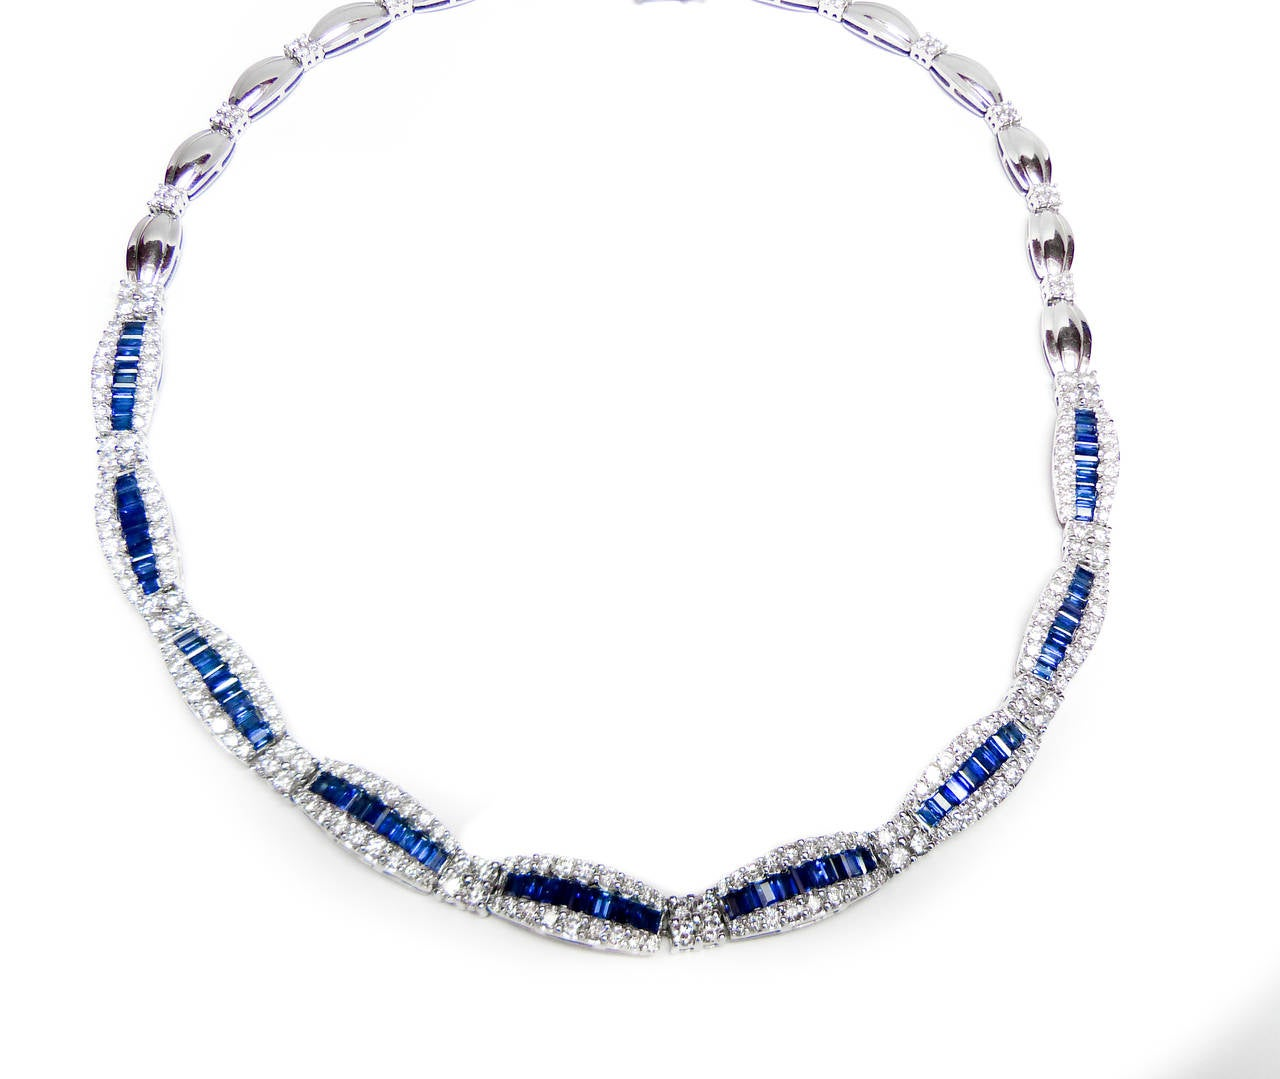 This beautiful sapphire and diamond necklace, features 8.50 Carats of sapphires and 10.00 Carats of diamonds